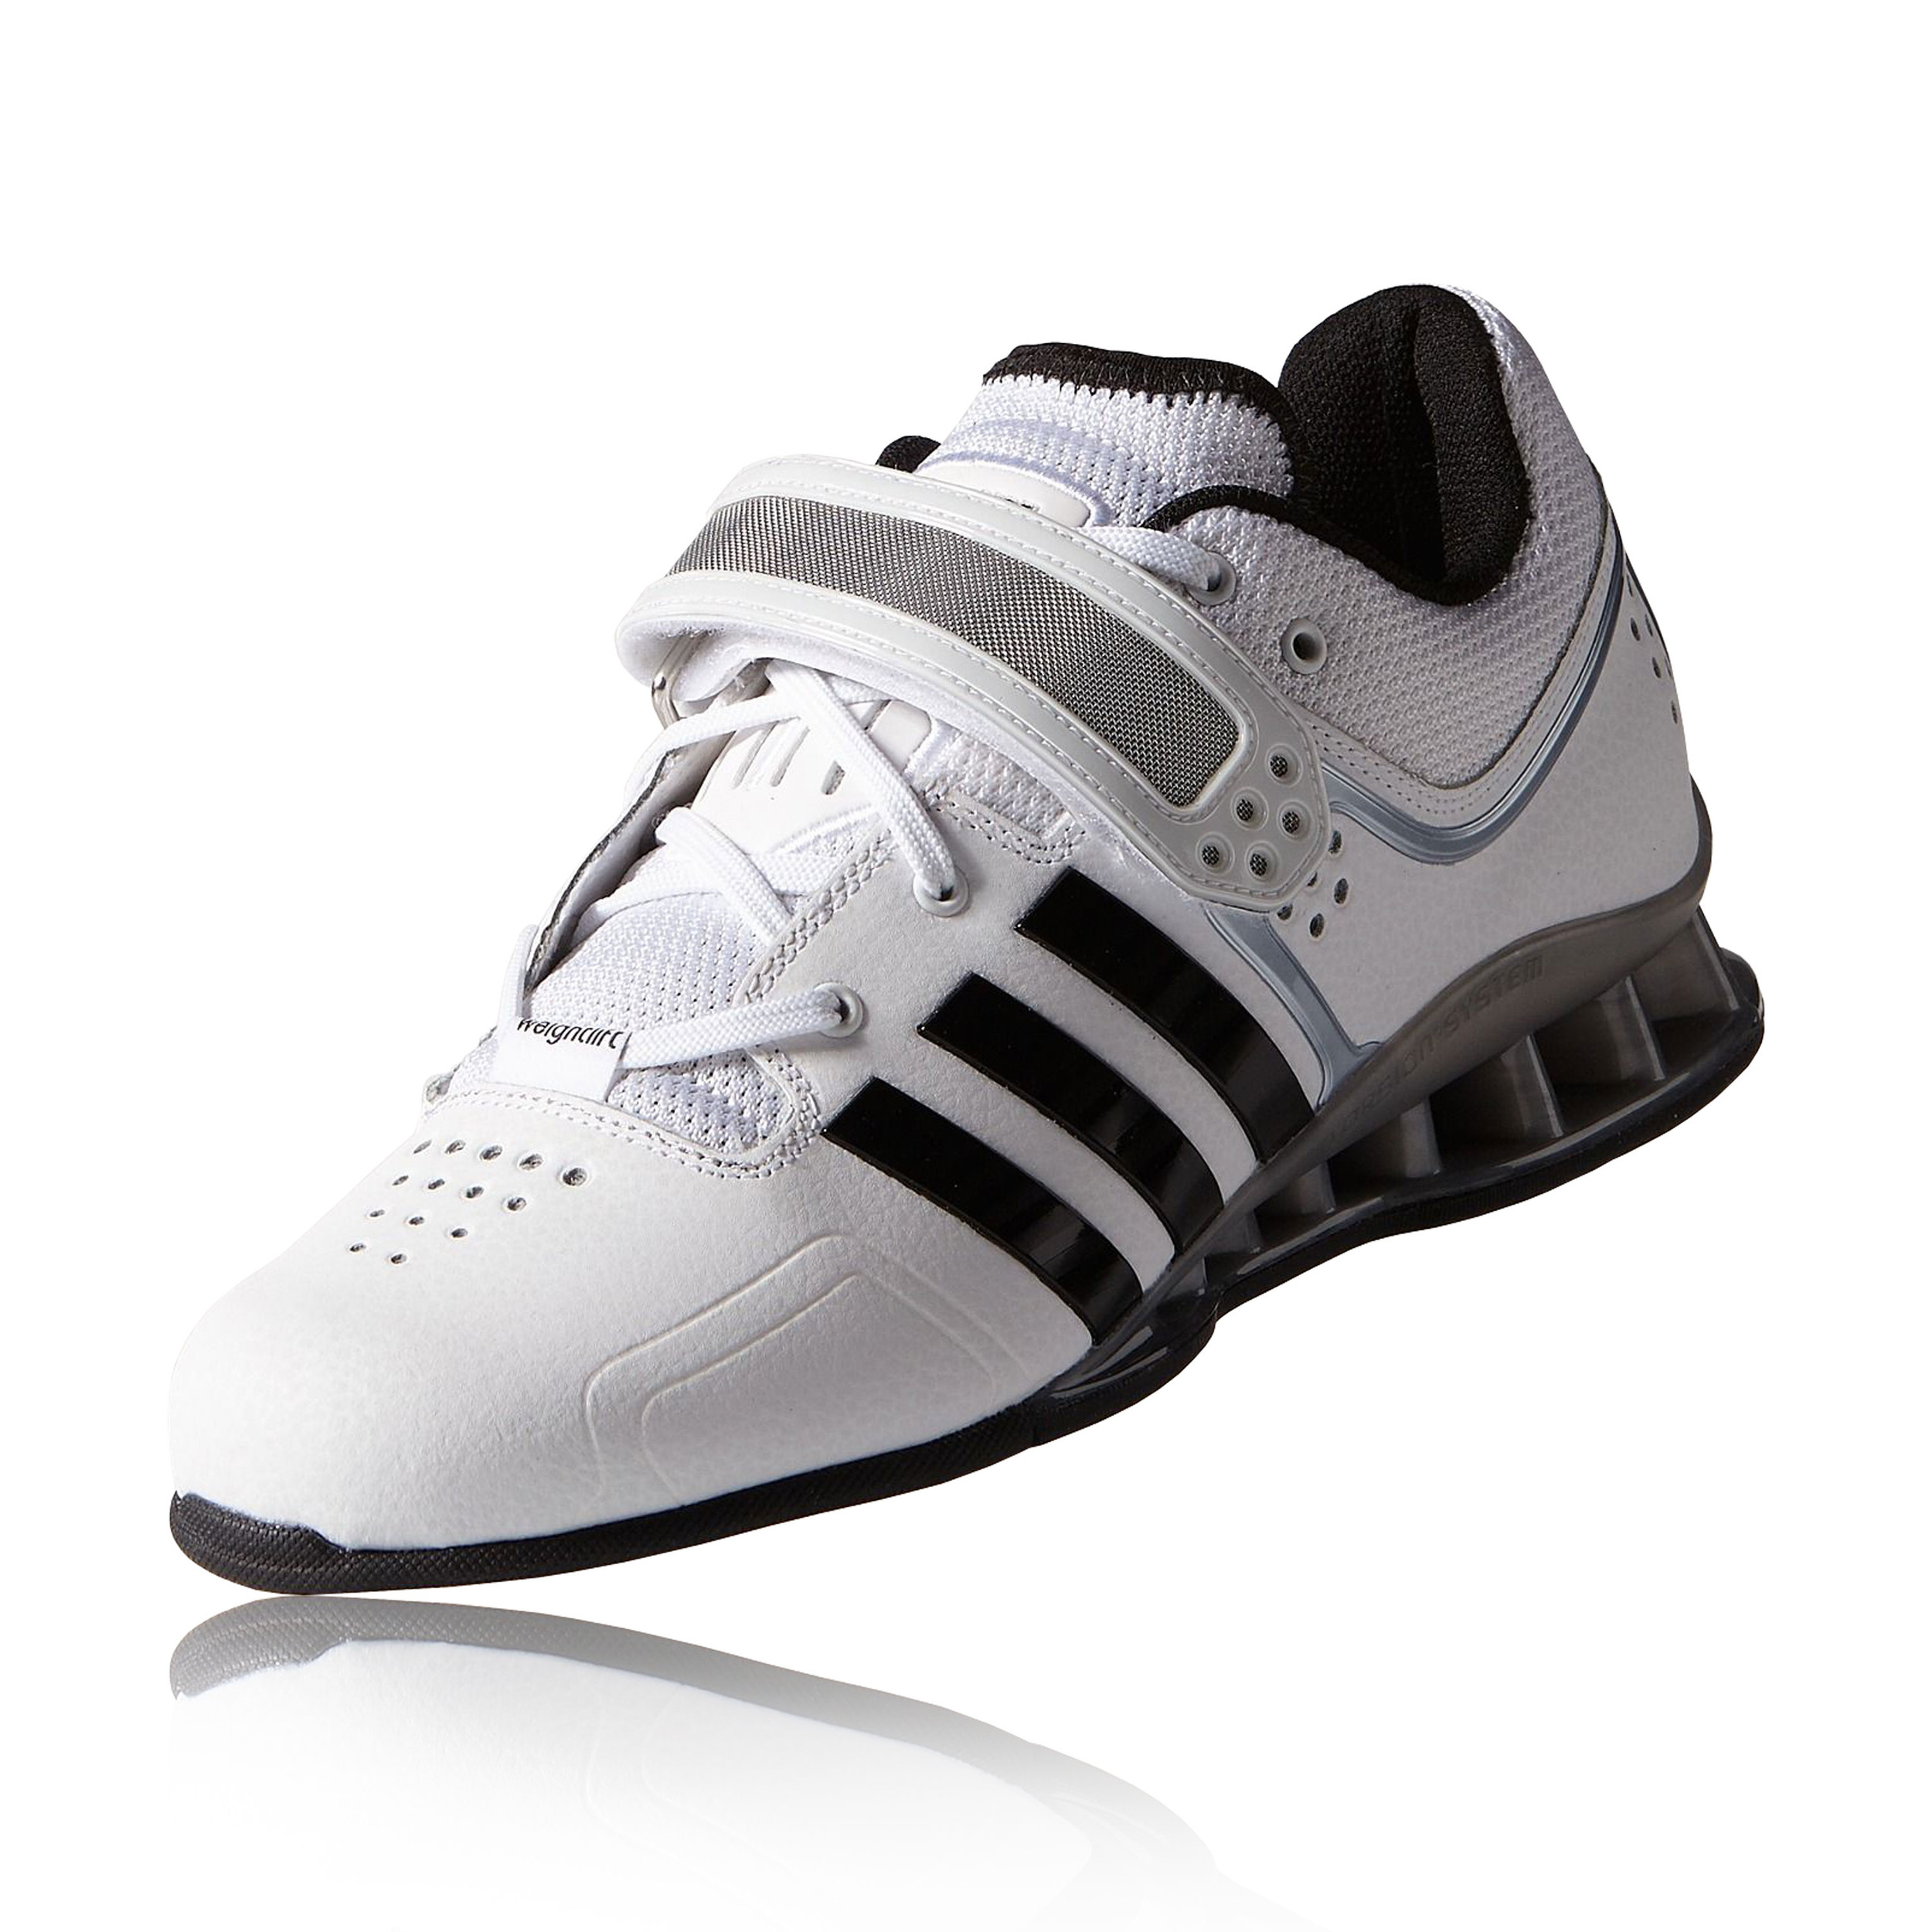 Mens Weightlifting Shoes Reviews